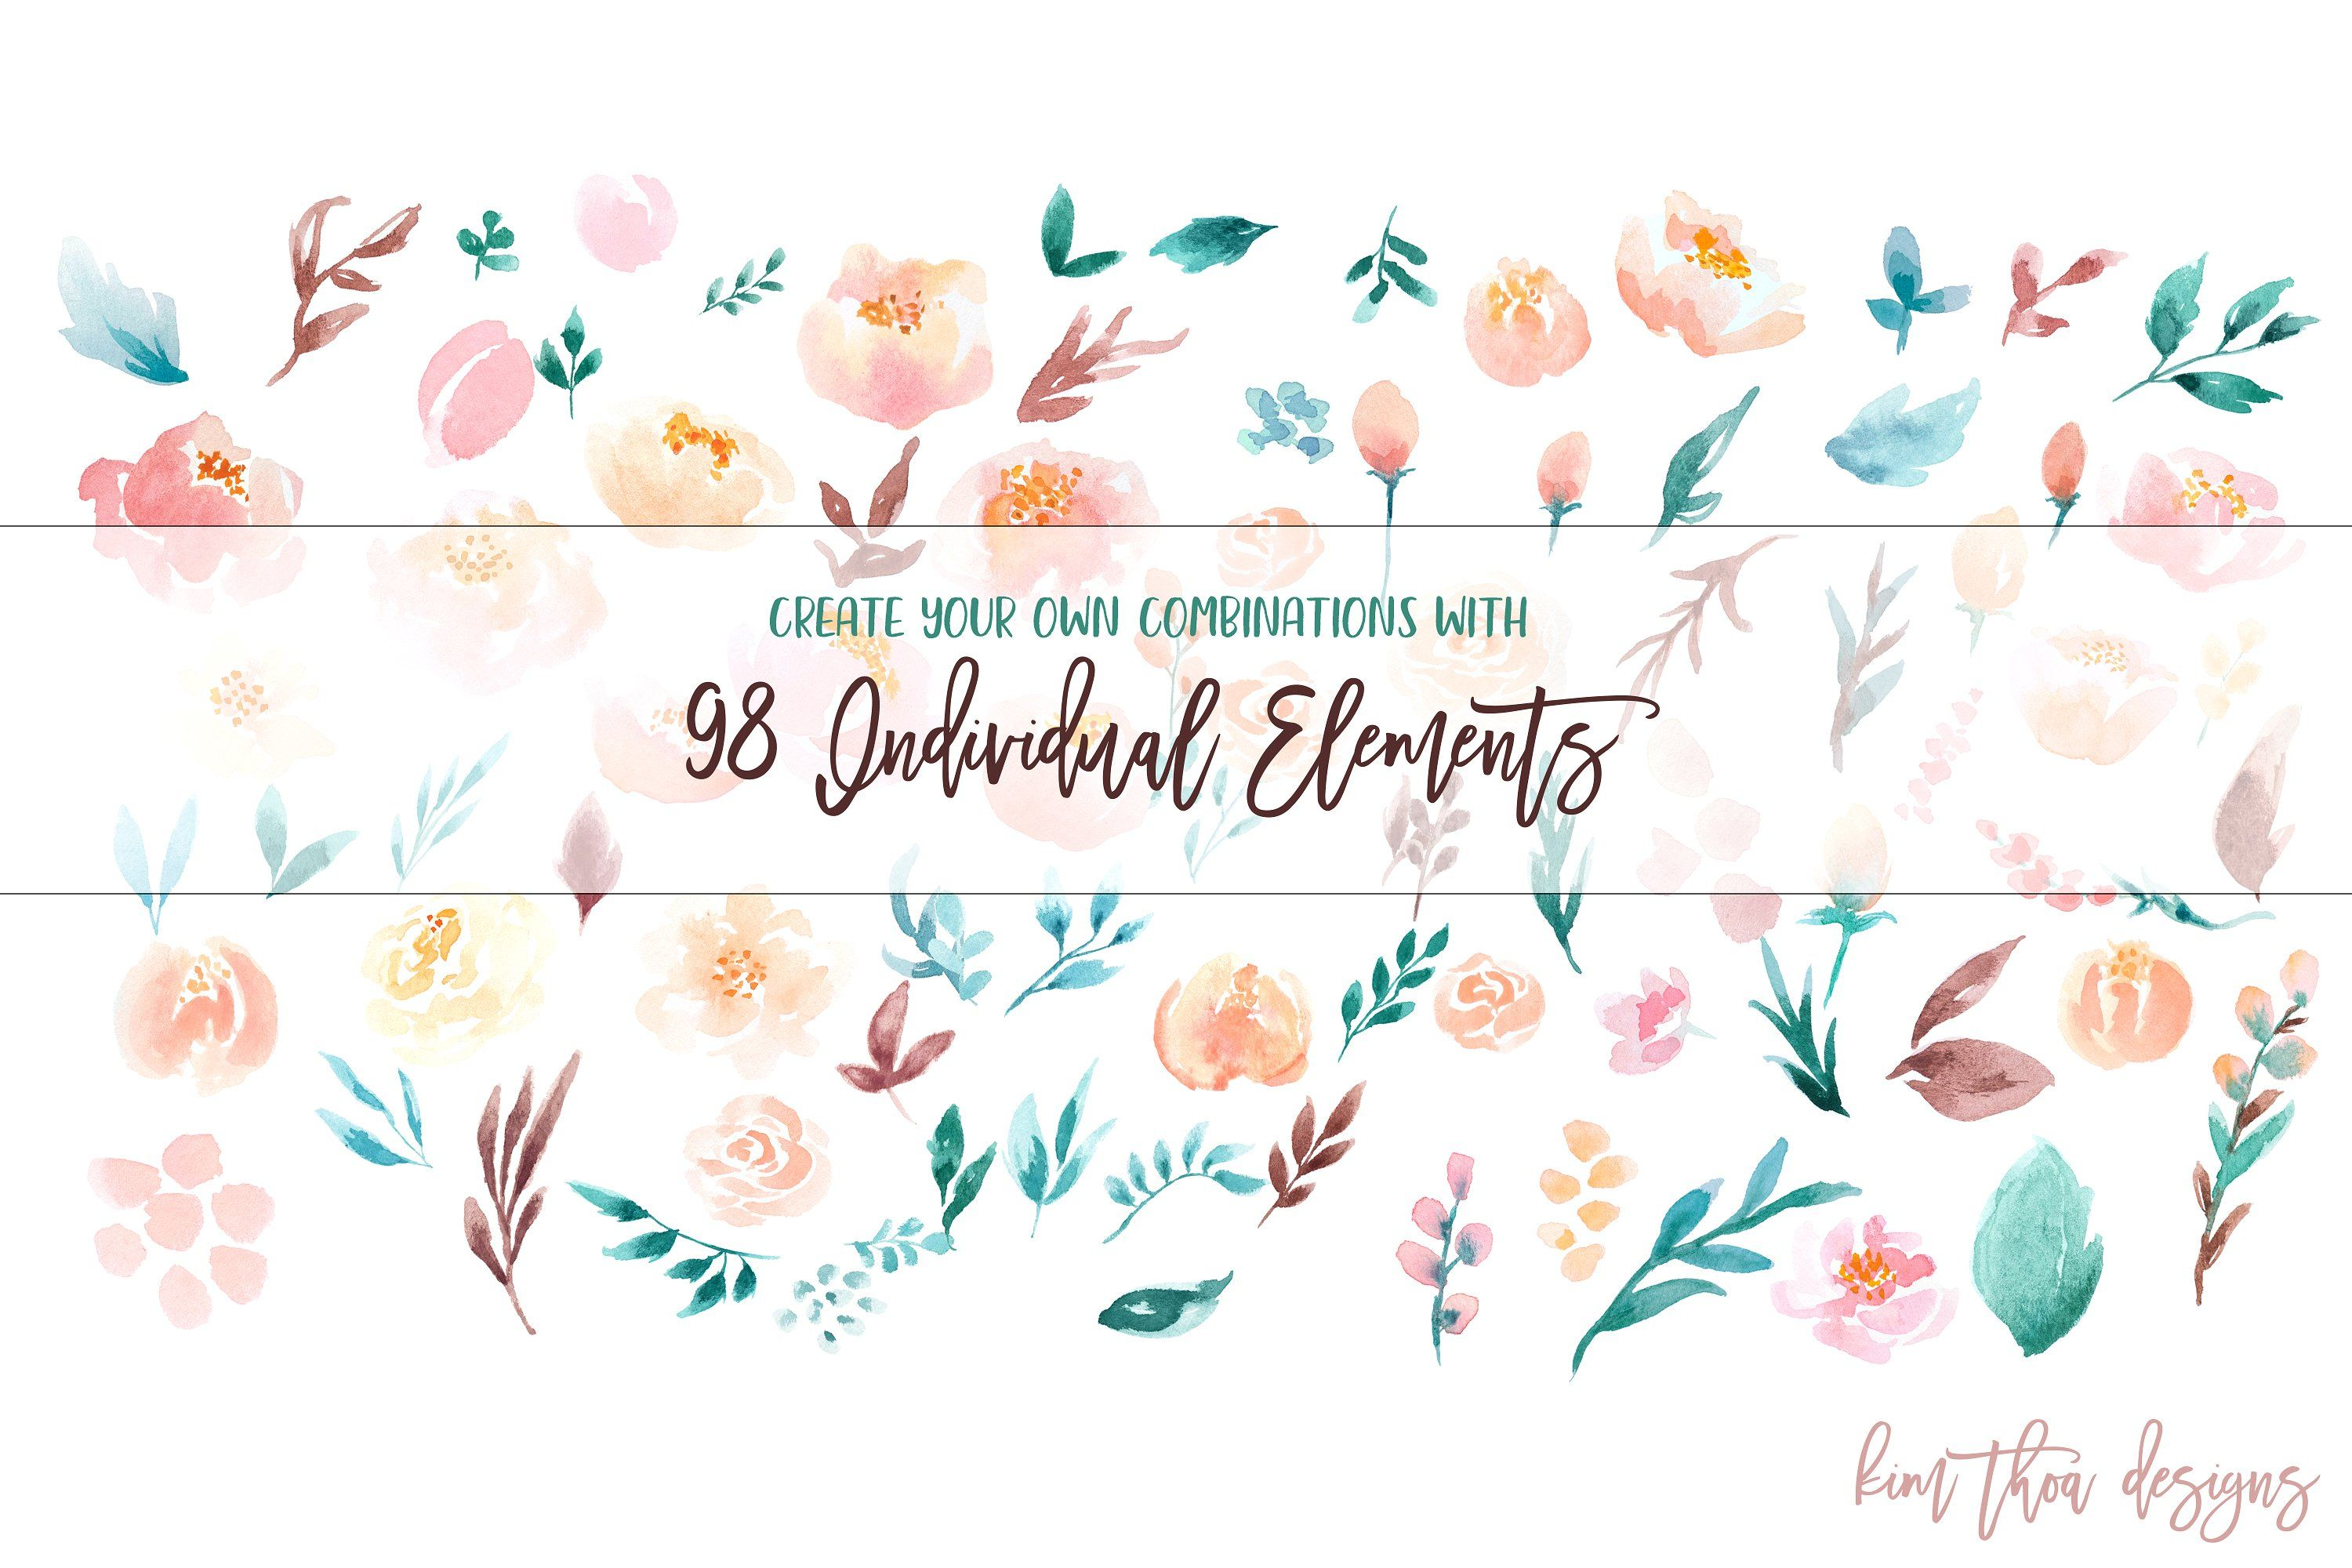 Coy - A Watercolor Floral Set by Kim Thoa Designs on @creativemarket